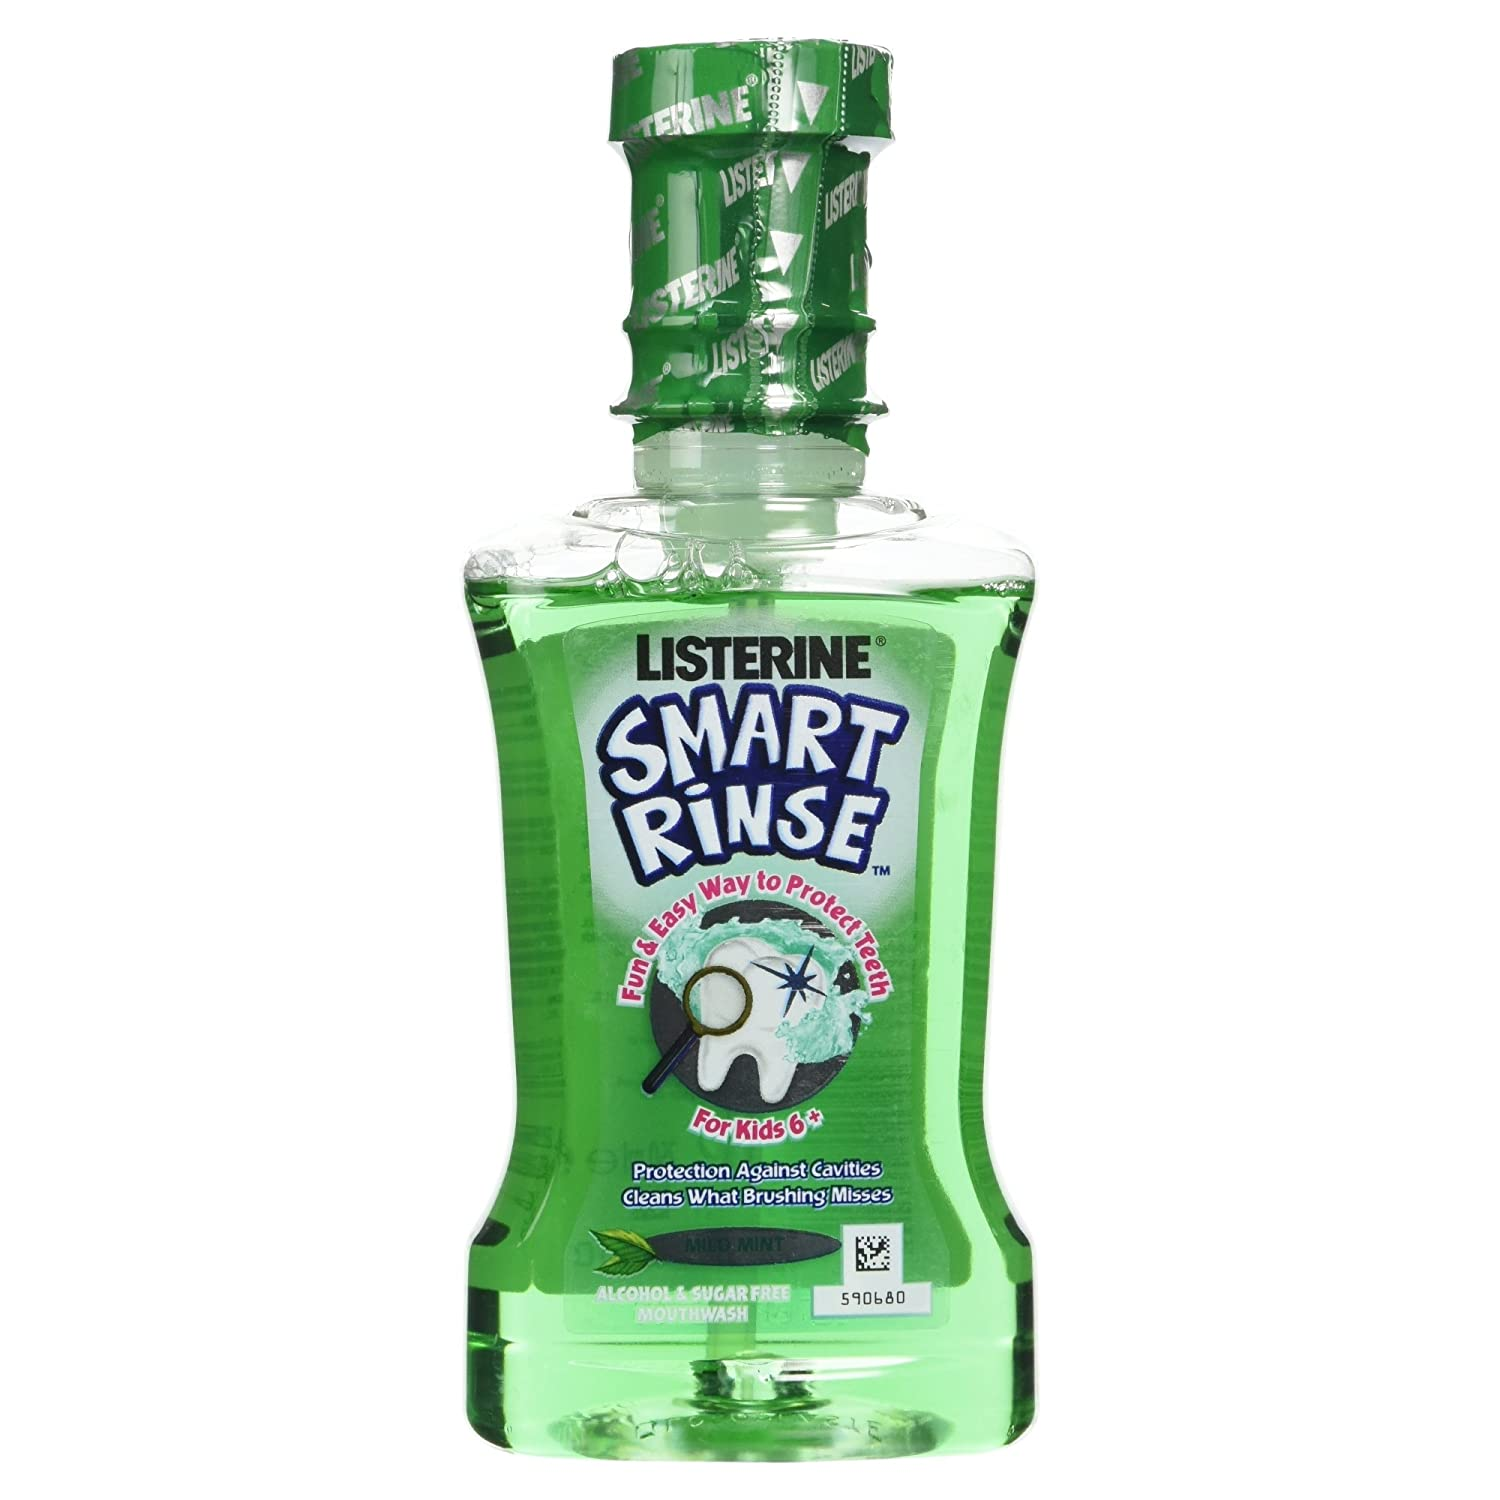 Listerine Smart Rinse Kids Mouthwash Mild Mint